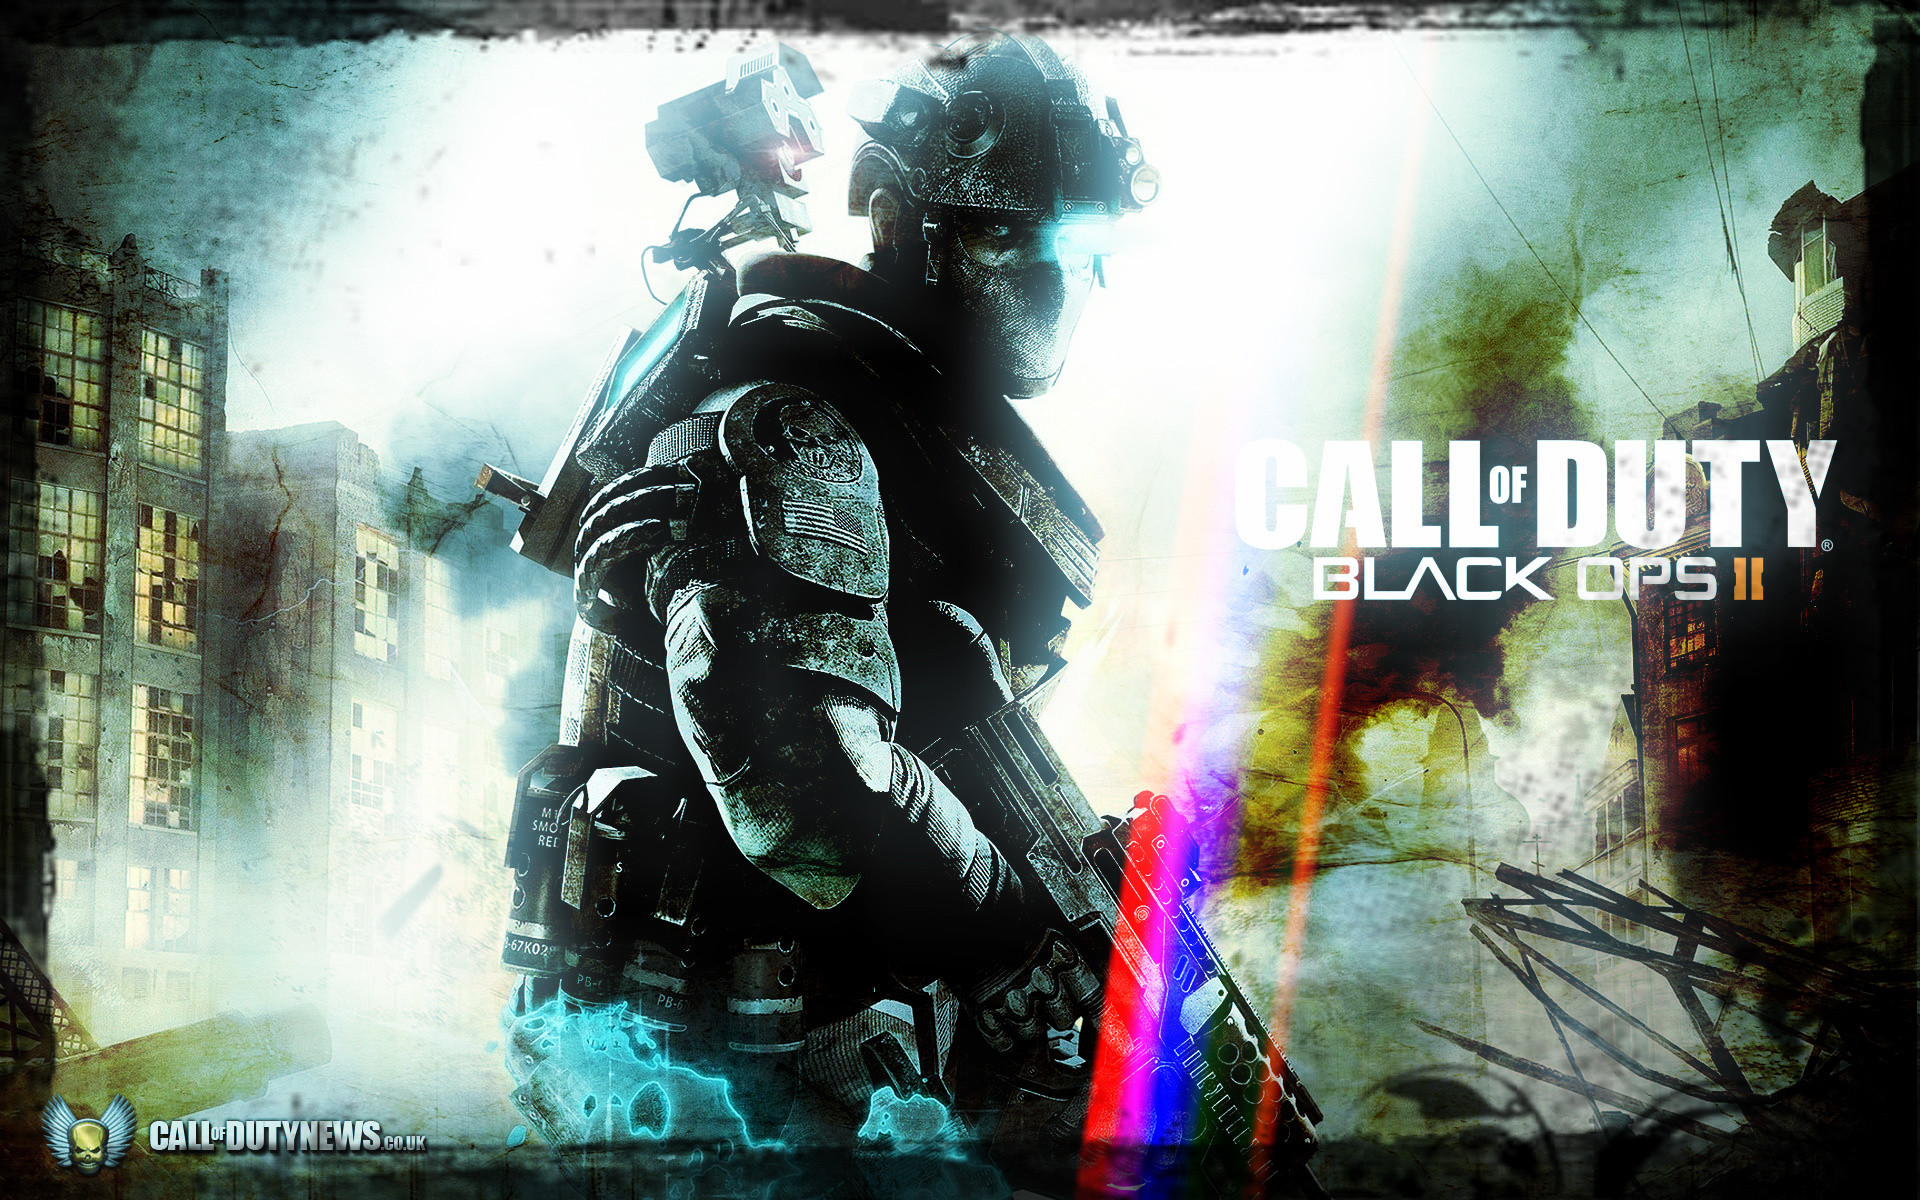 Call of Duty Black Ops Background (74+ images)